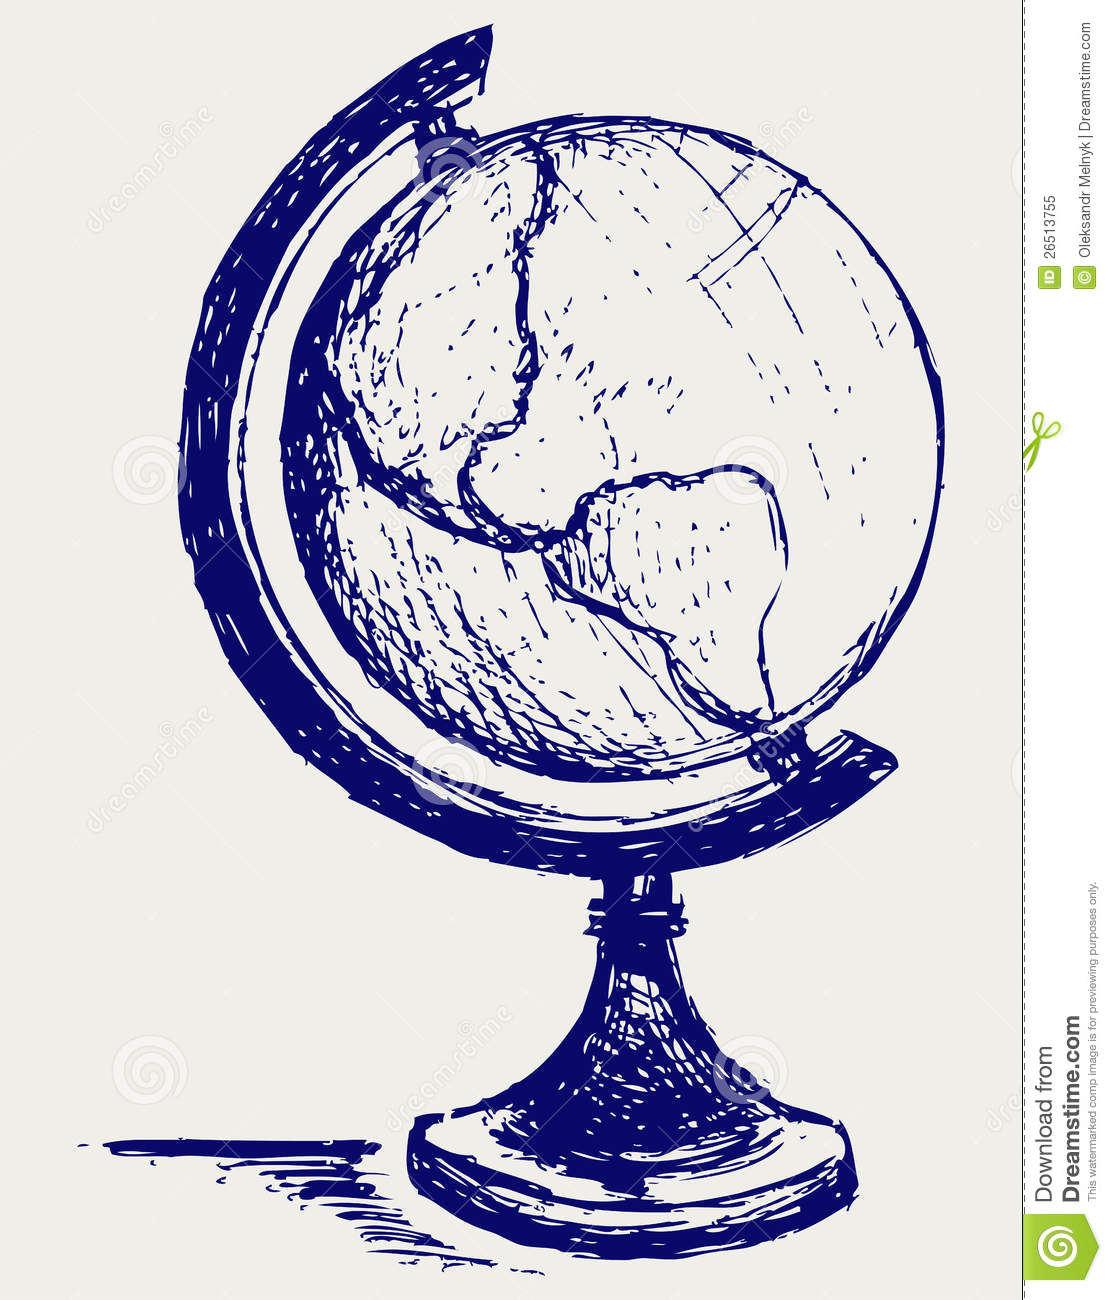 globe sketch royalty free stock photo image 26513755 clipart horseshoe western clip art horseshoe crab